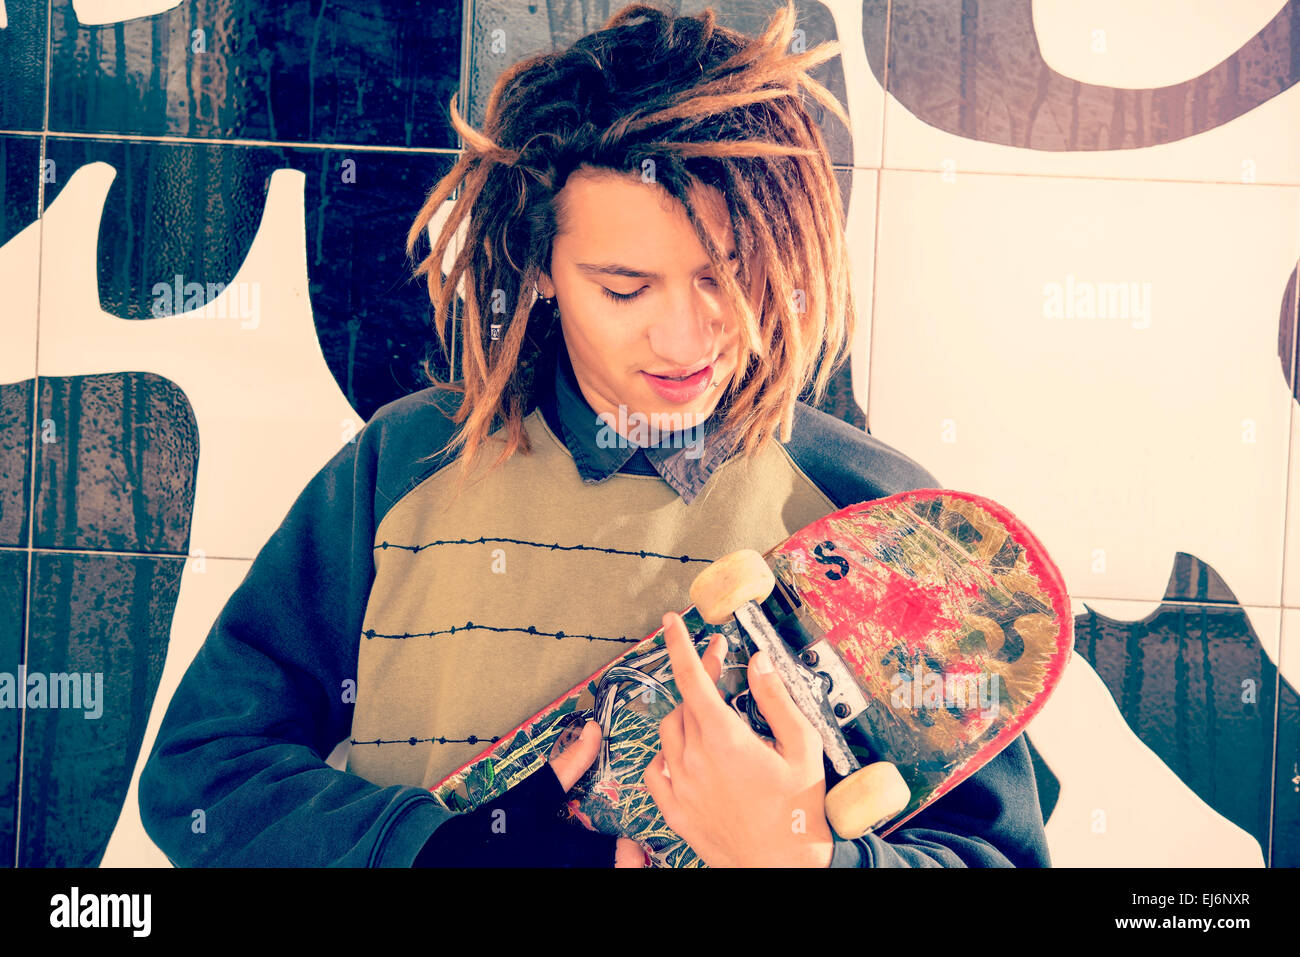 portrait of young guy  with skate and rasta hair in a lifestyle concept warm filter applied - Stock Image